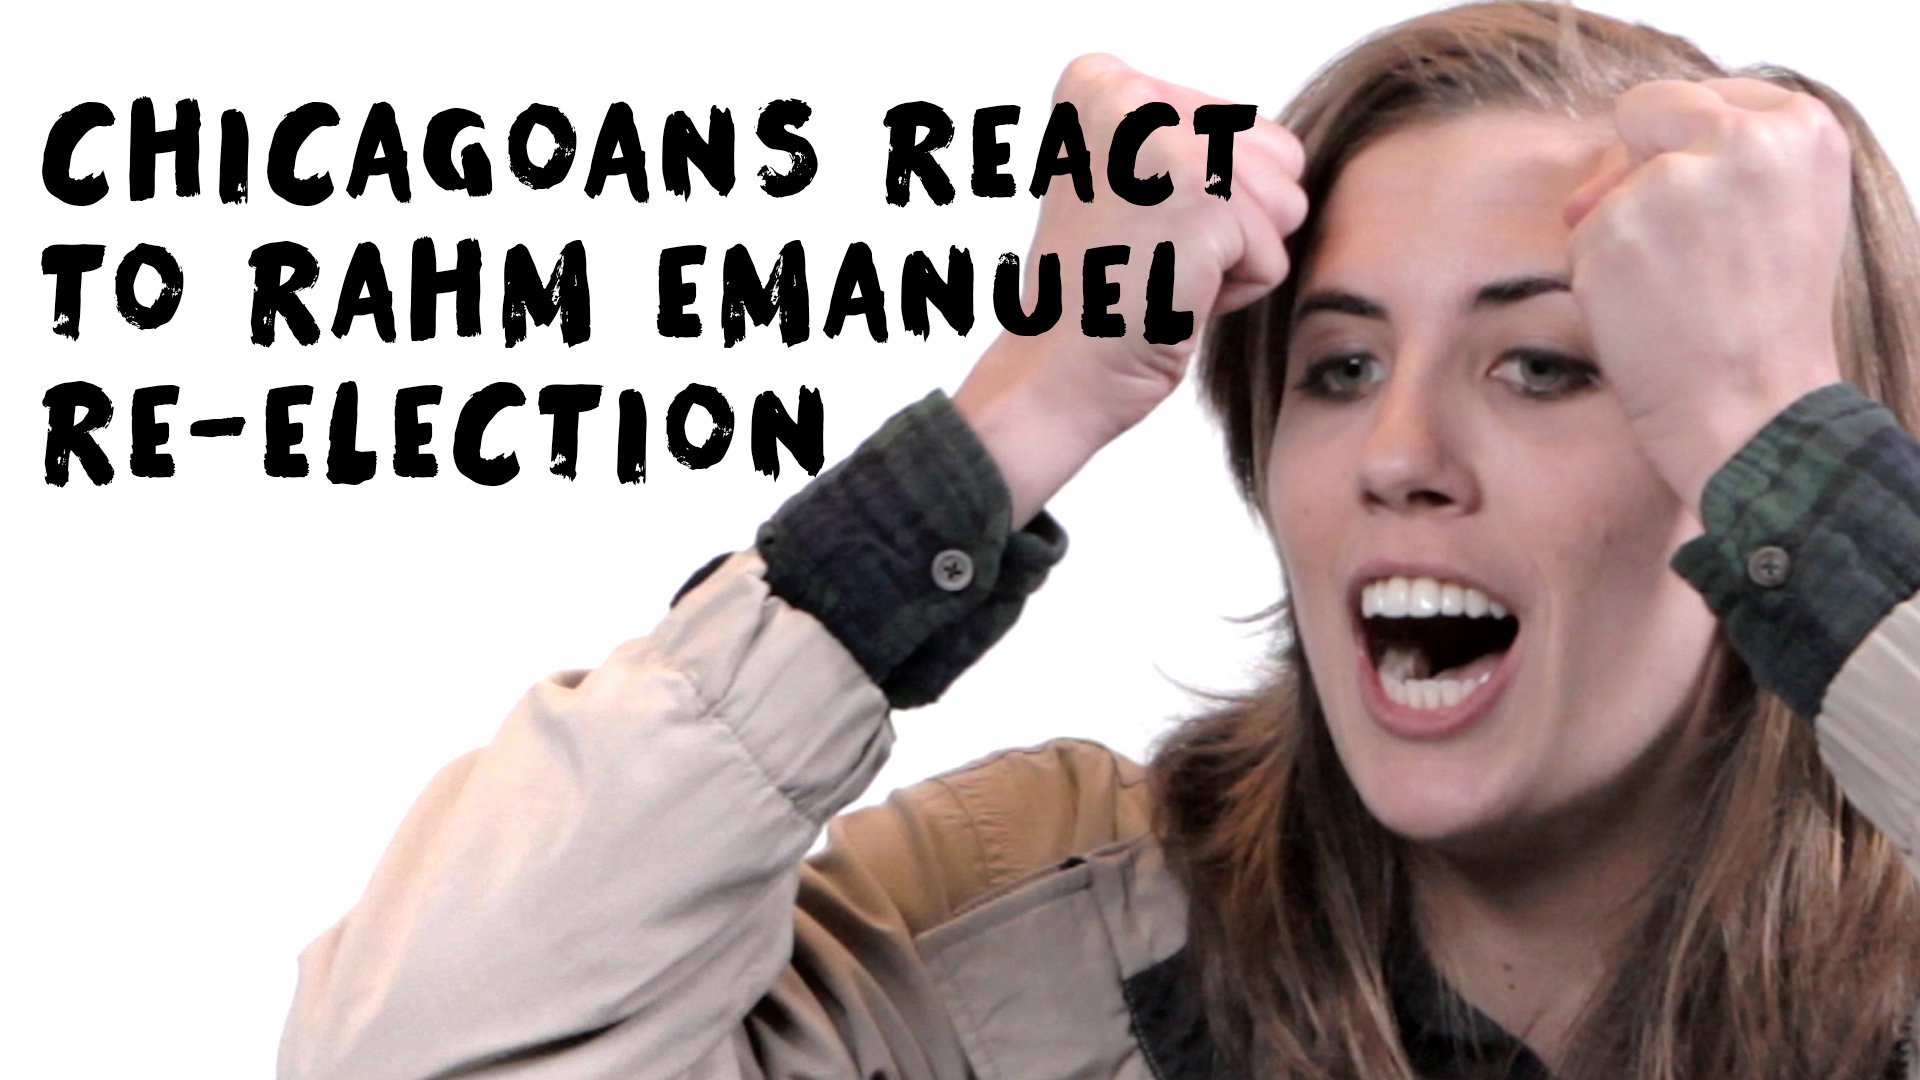 Chicagoans React to Rahm Emanuel Re-Election